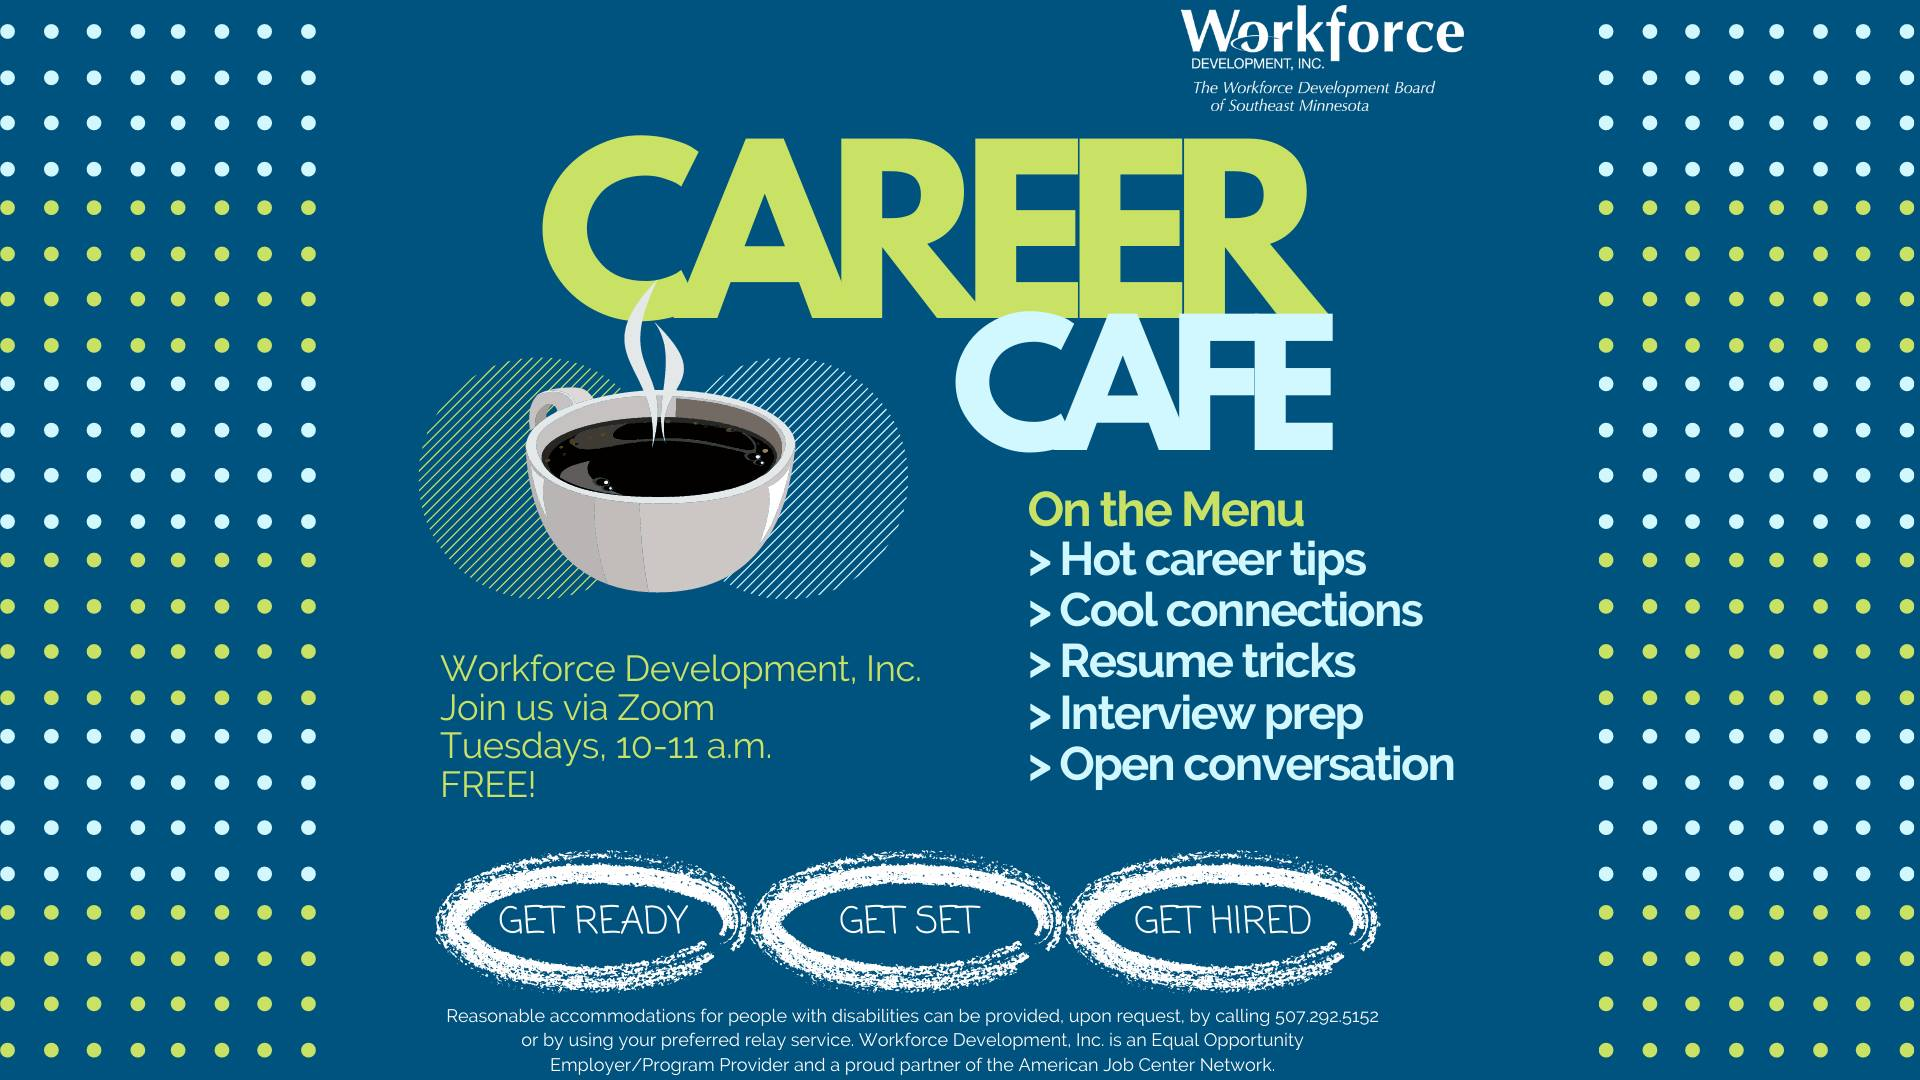 Career Café: Professional Development and Learning New Skills